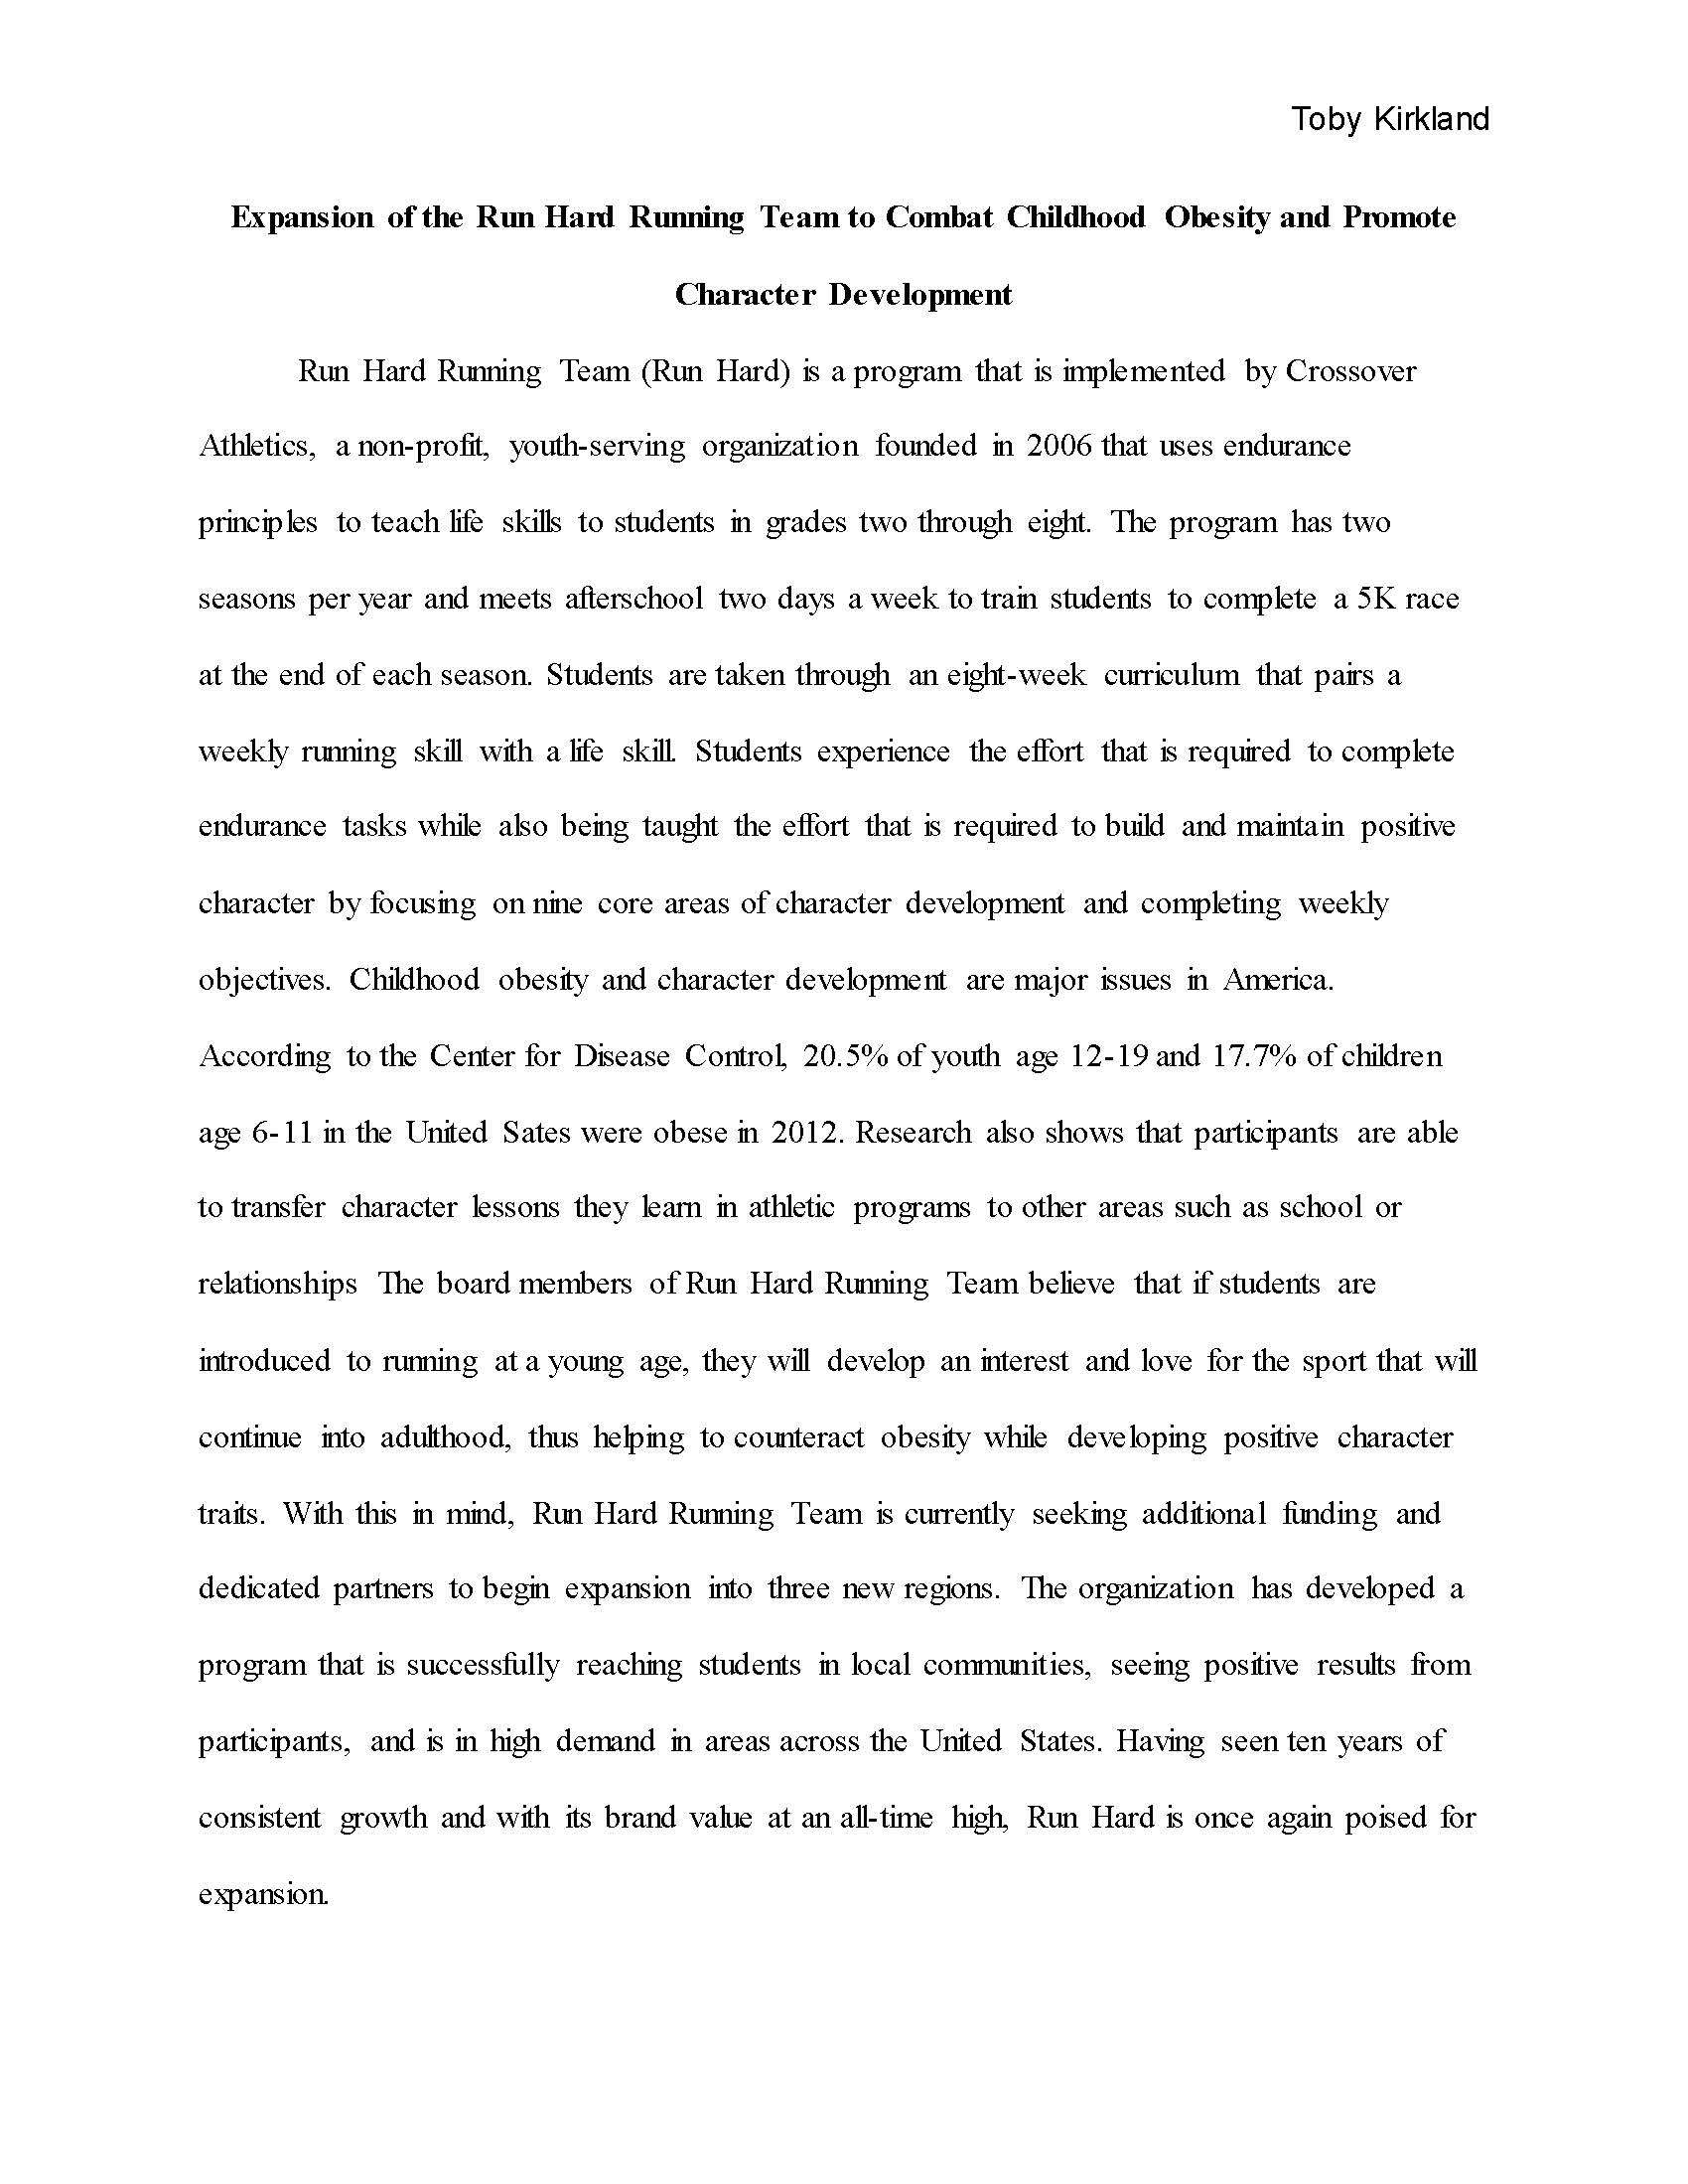 002 Toby Kirkland Final Grant Proposal Page 01 Childhood Obesity Research Rare Paper Outline Pdf Full